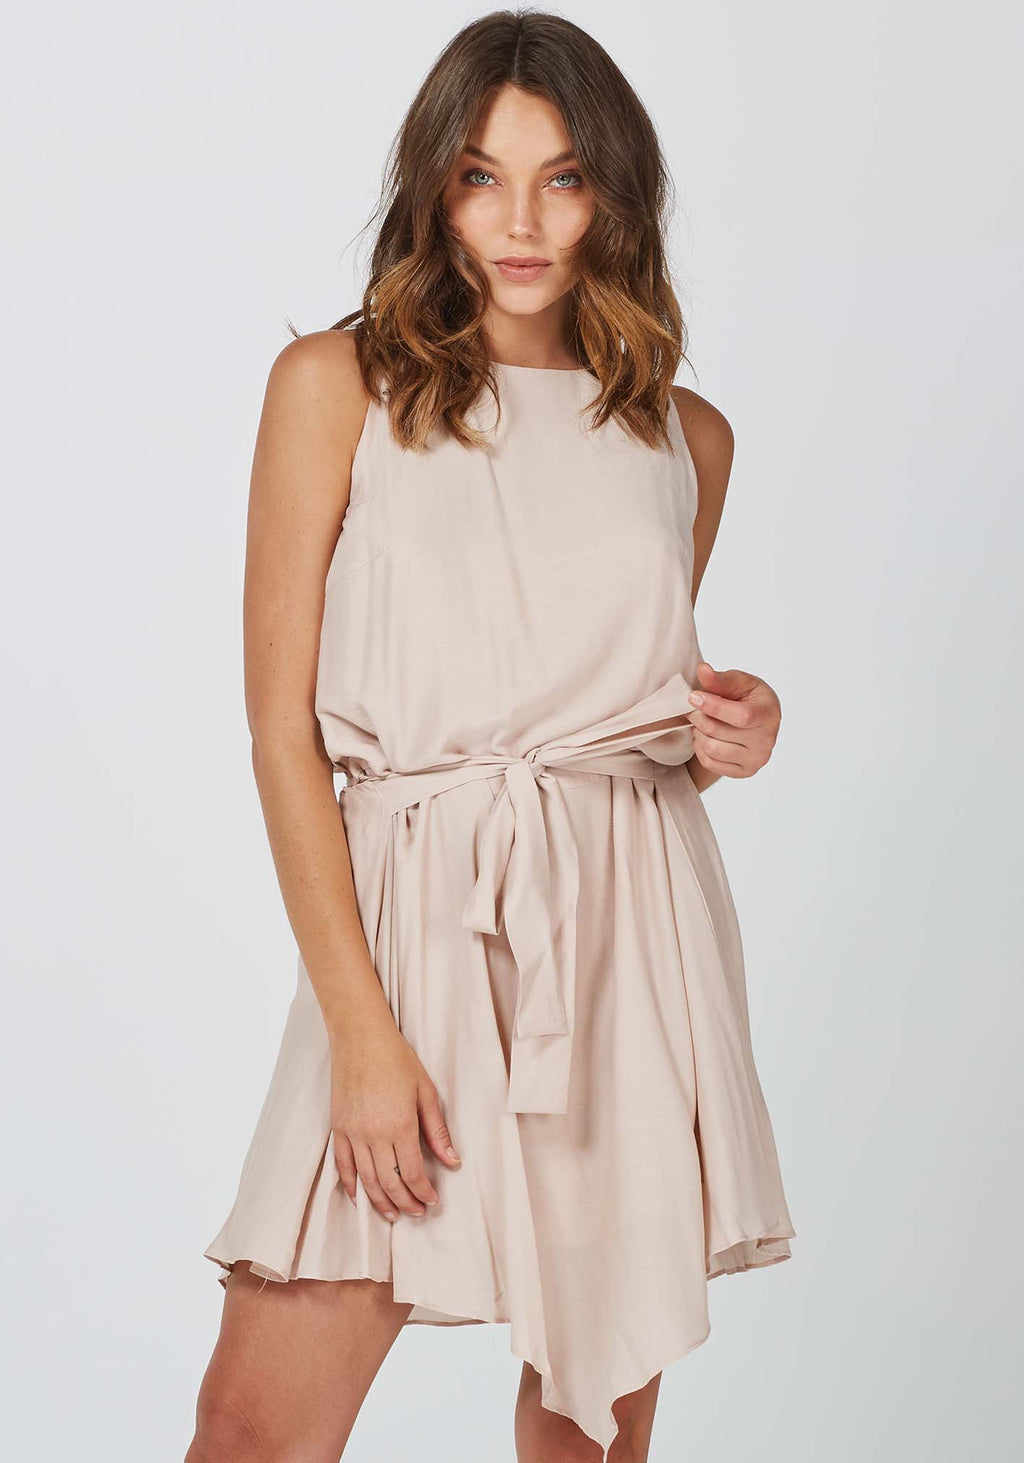 Pocket Watch Sleeveless Party Dress by Three of Something Sydney Australia